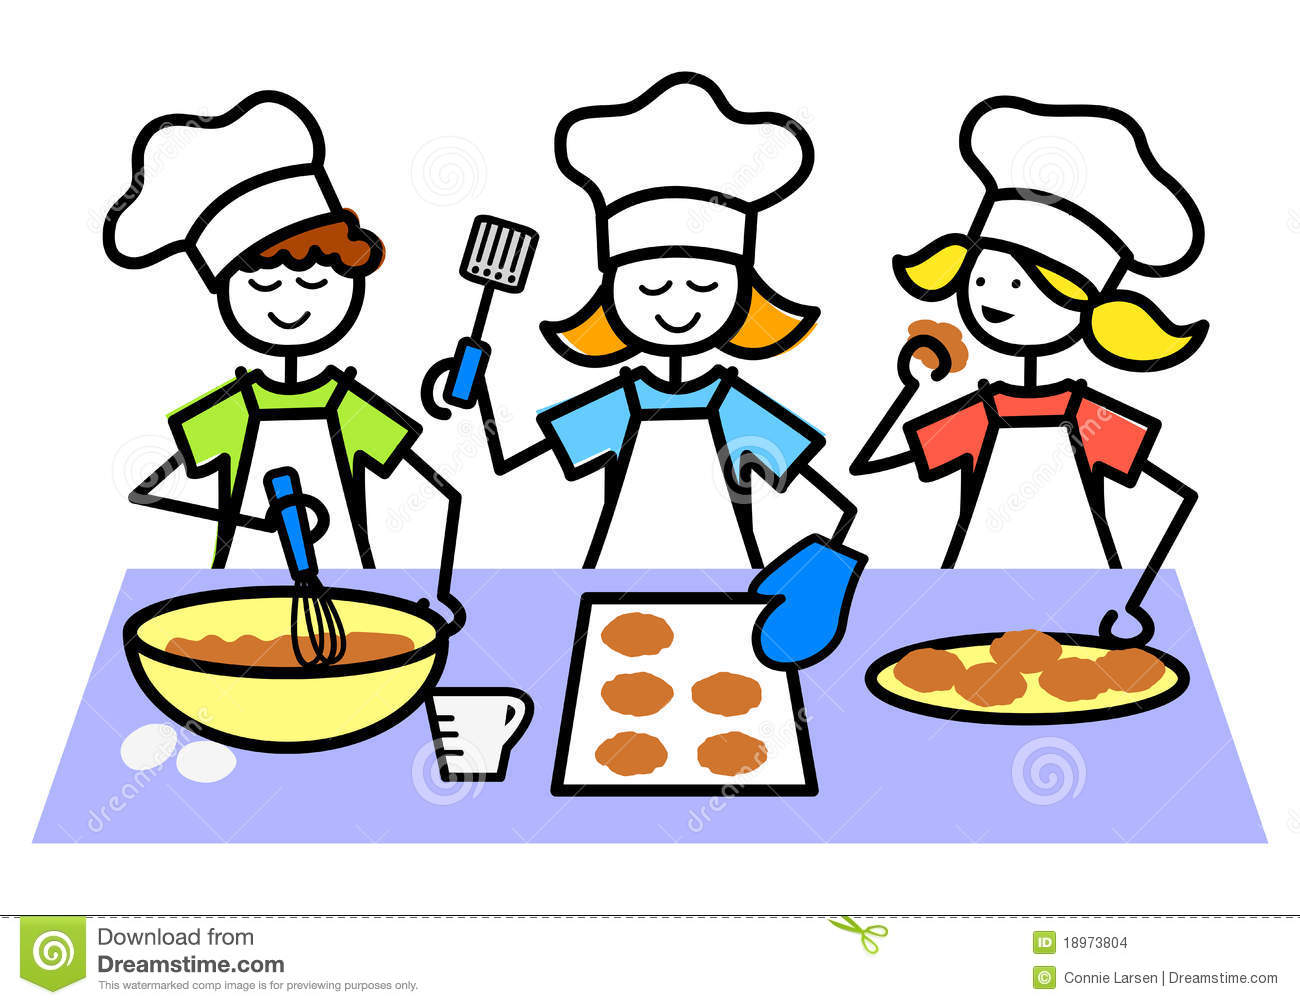 Cooking with kids clipart banner freeuse download 51+ Kids Cooking Clipart   ClipartLook banner freeuse download